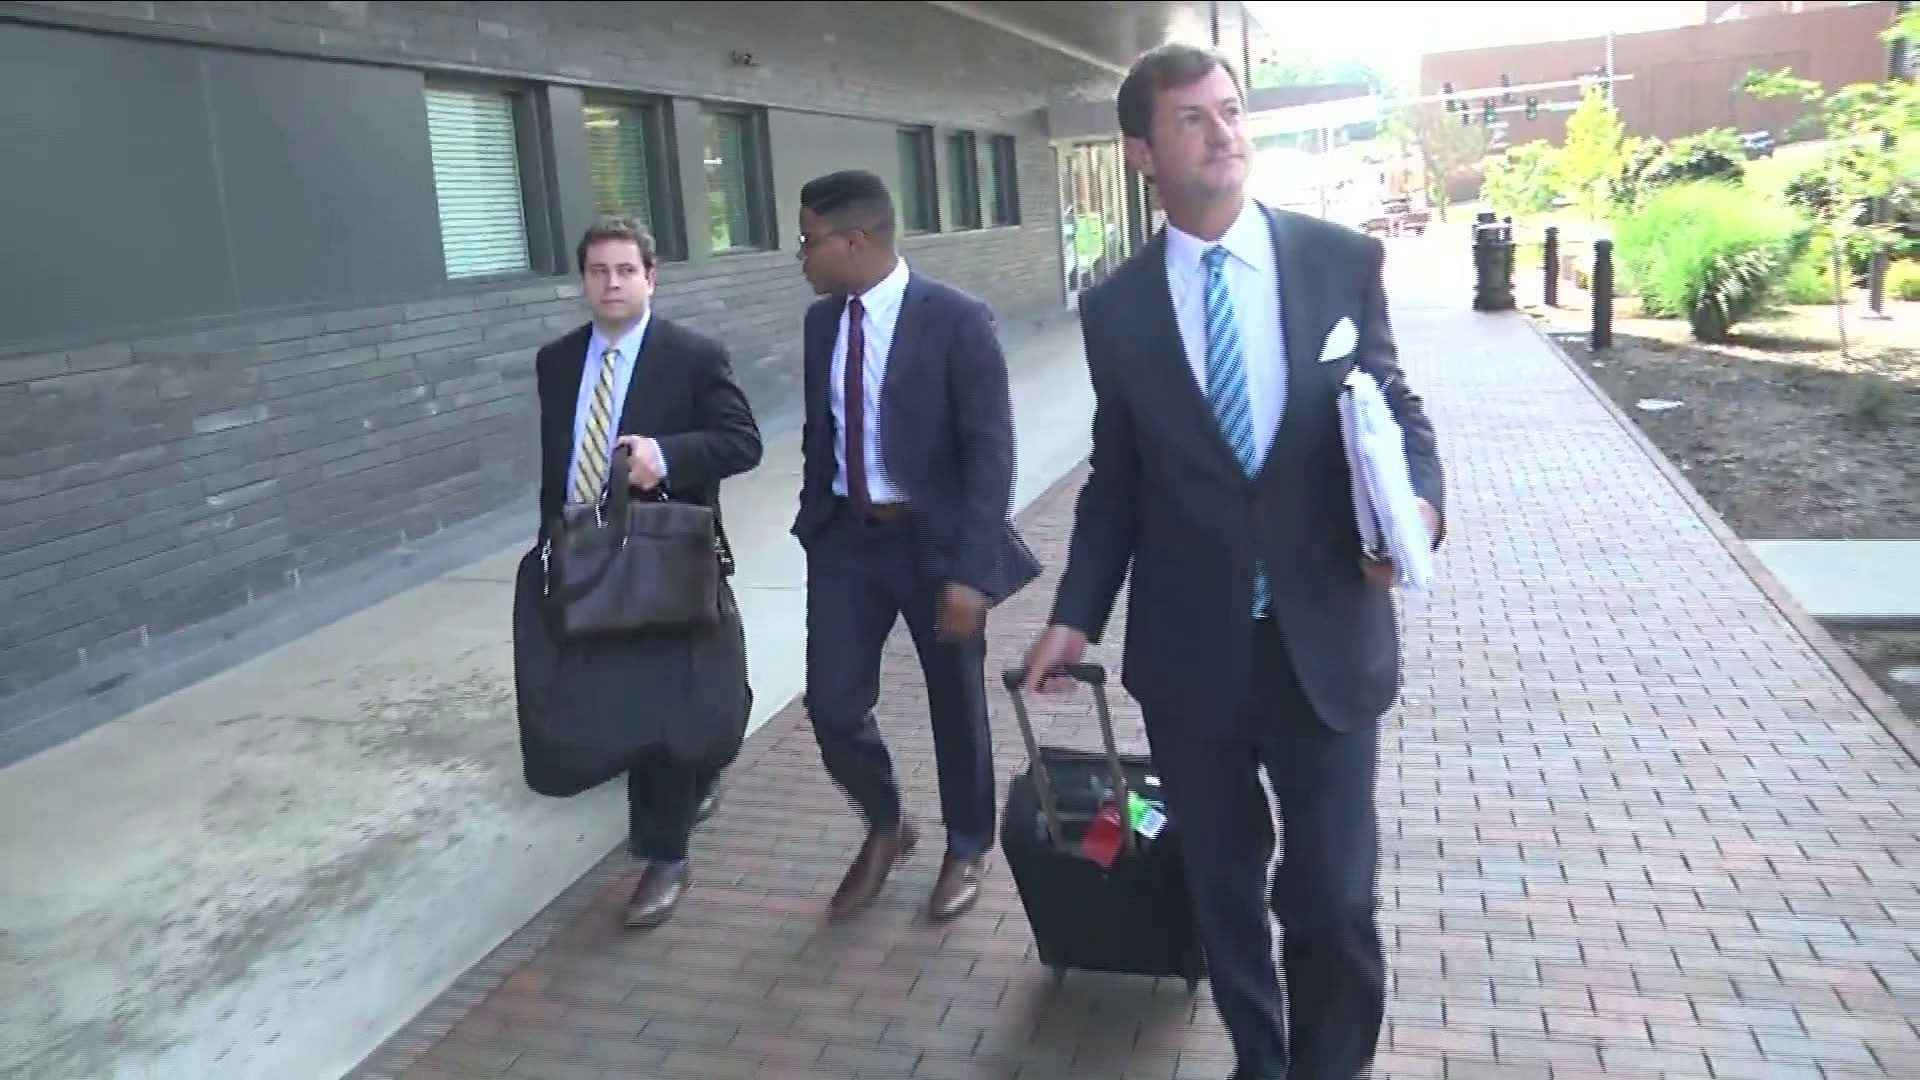 Martese Johnson (centered) with attorneys at a federal courthouse in Roanoke